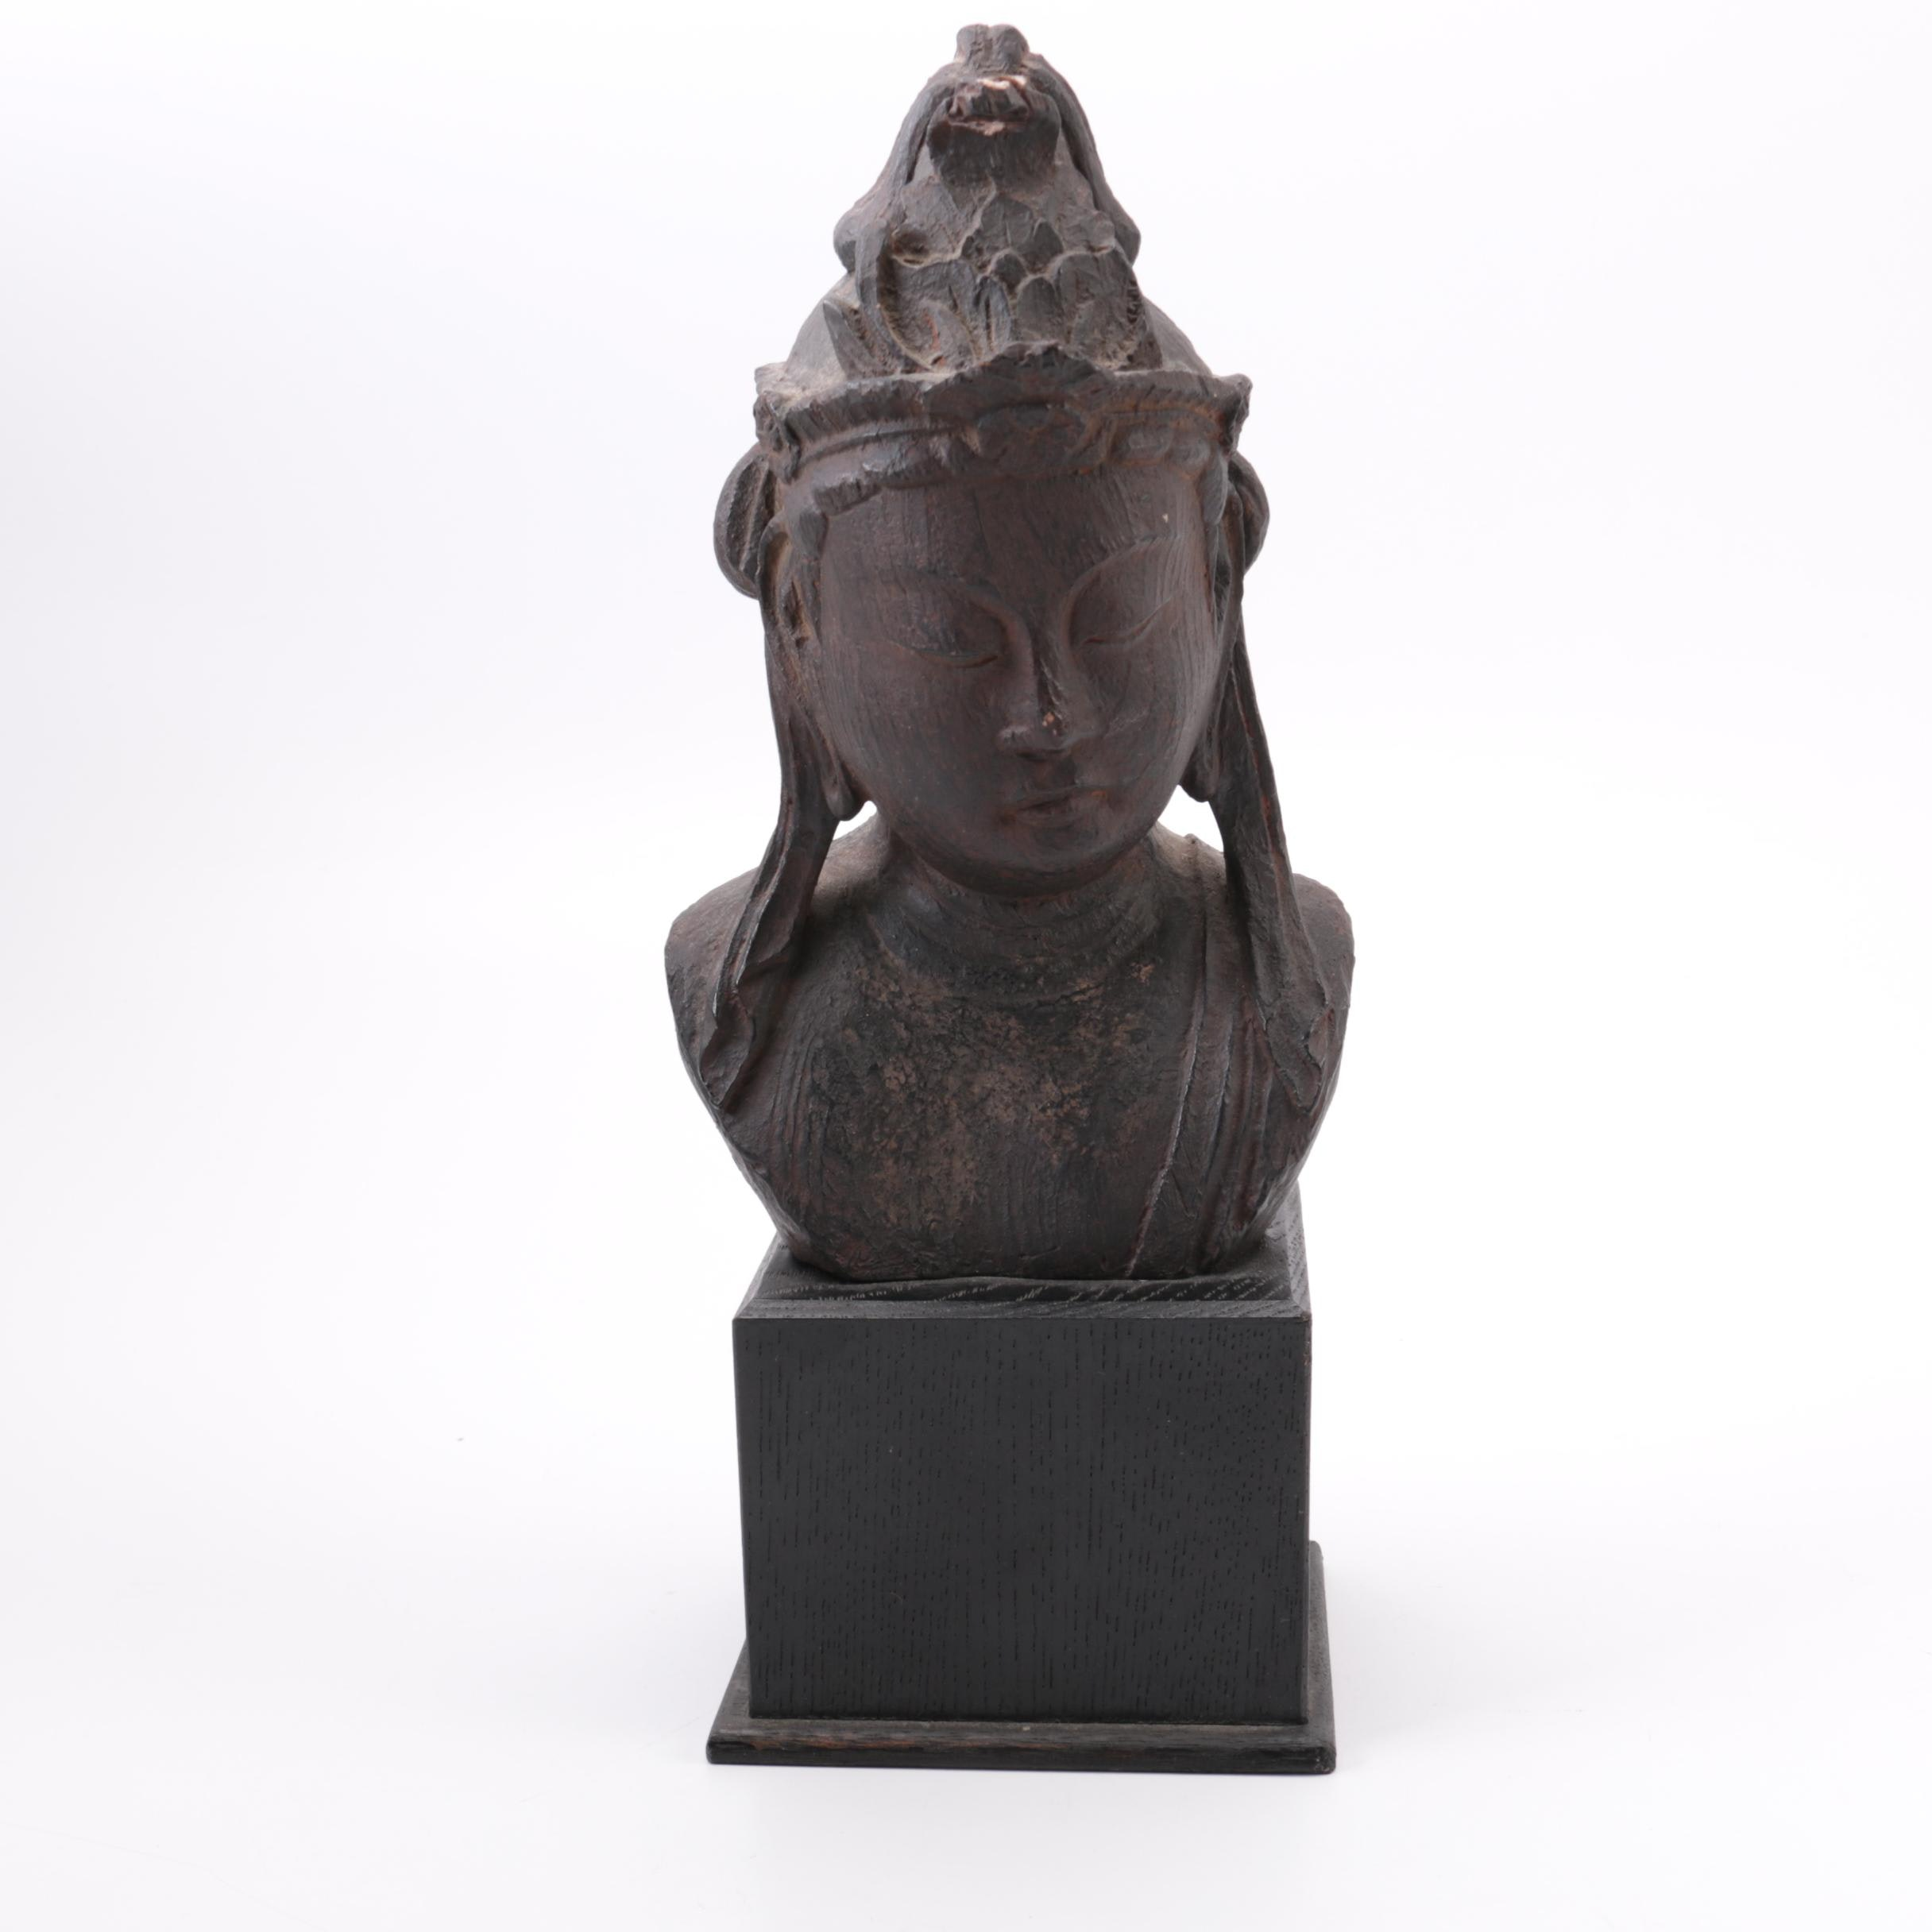 Indian Inspired Wooden Budai Head Sculpture